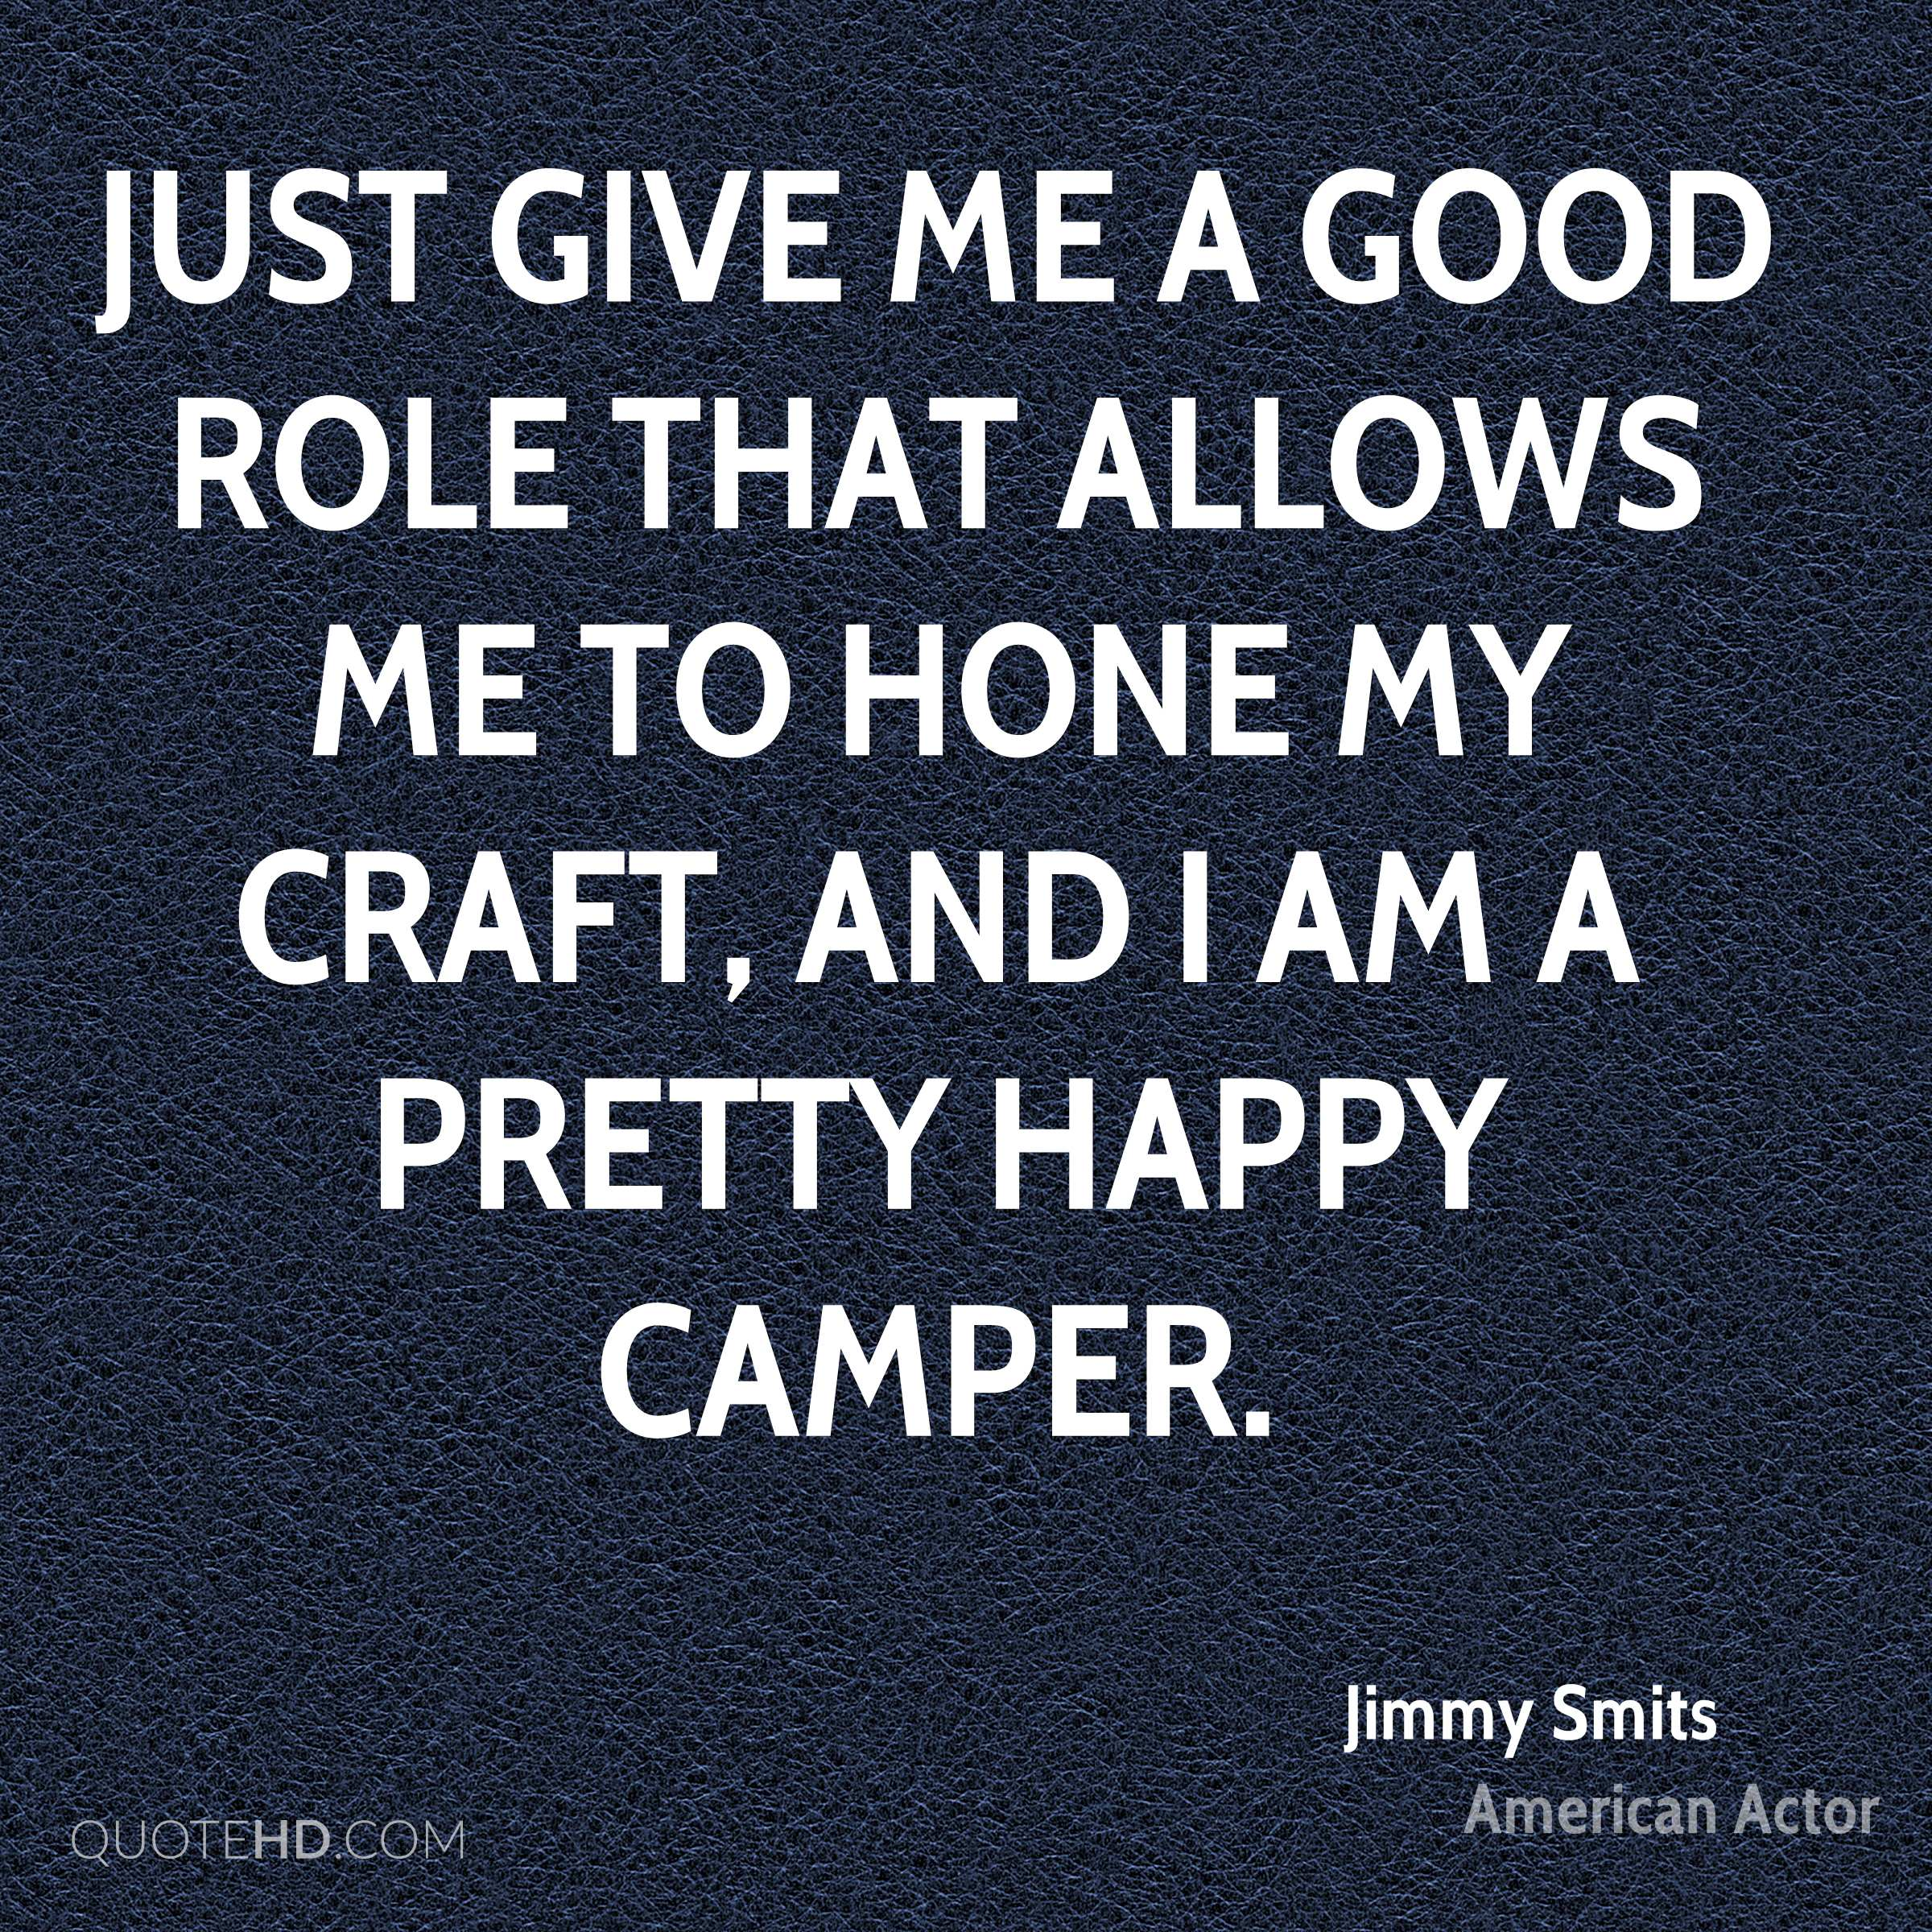 Just give me a good role that allows me to hone my craft, and I am a pretty happy camper.